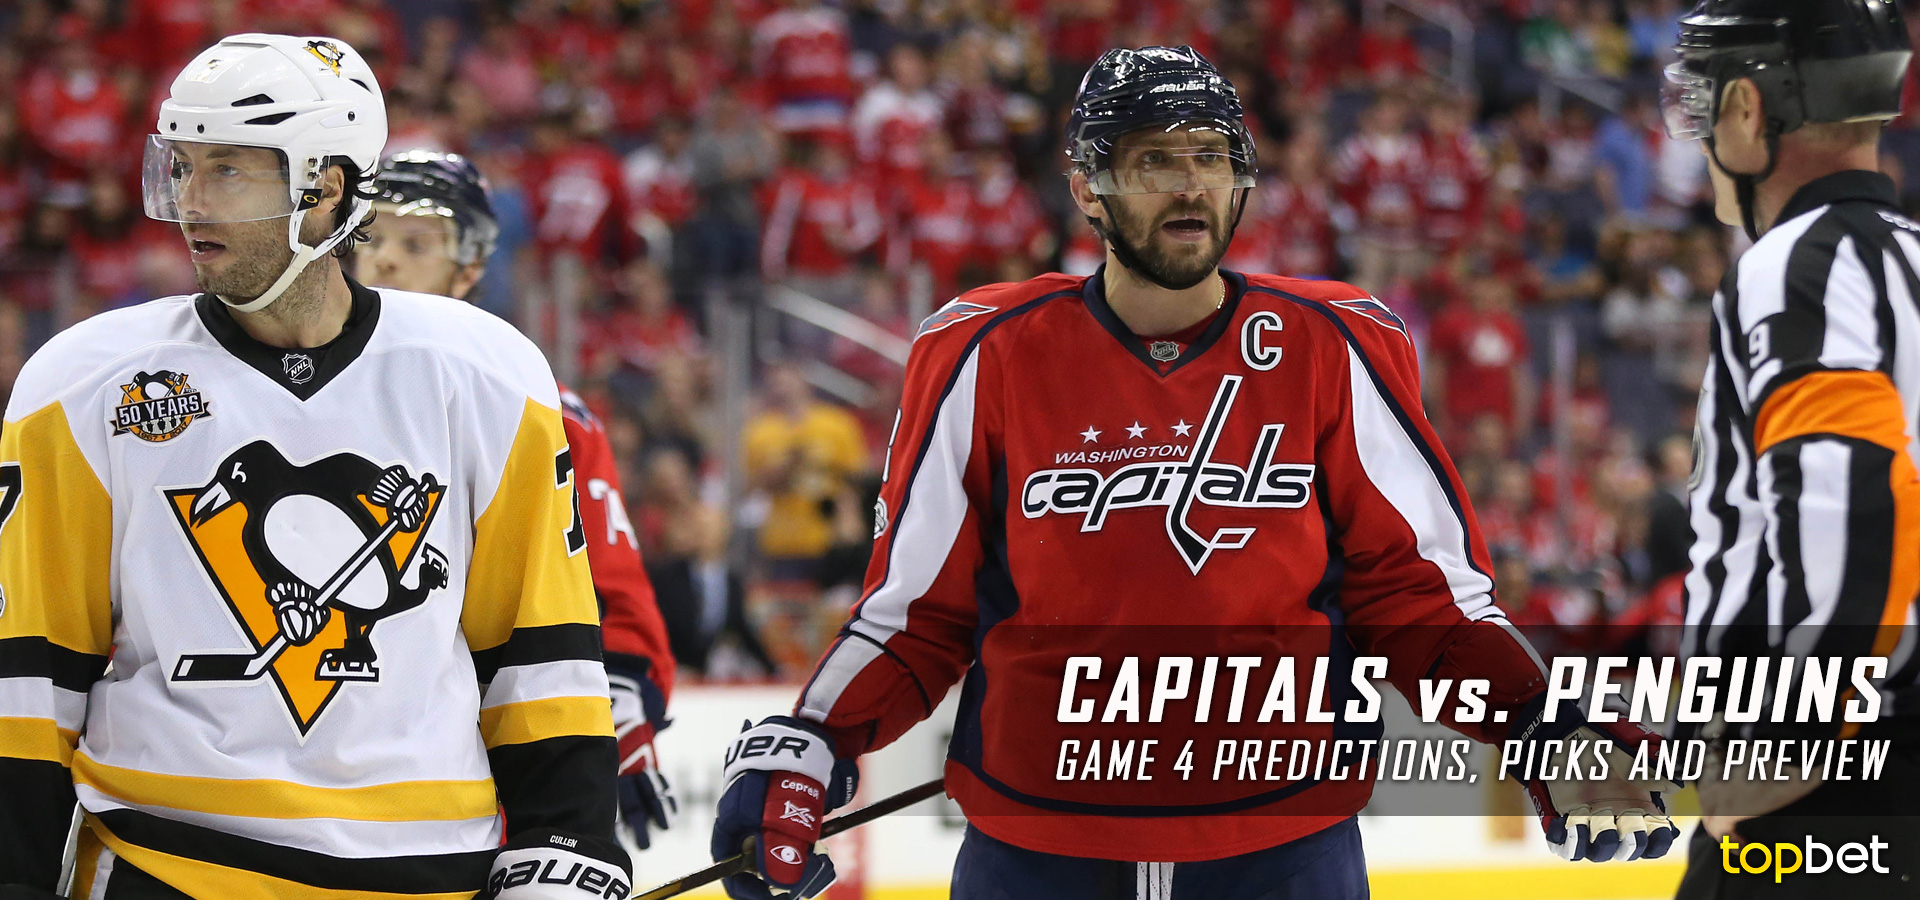 7f5c280bfcc Washington Capitals vs. Pittsburgh Penguins Predictions